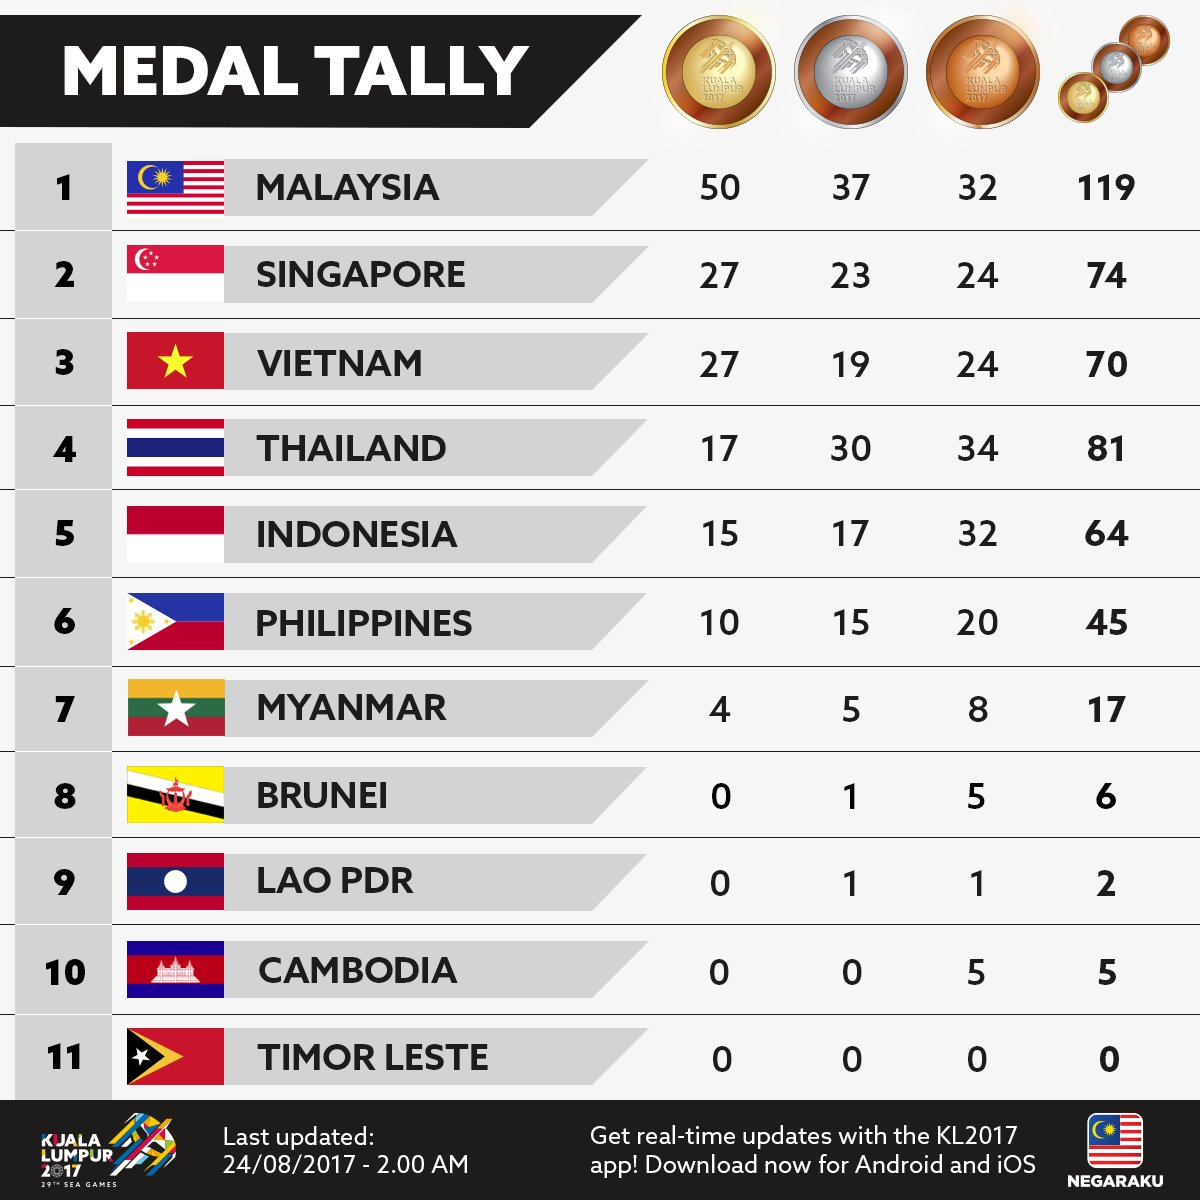 SEA Games medal tally